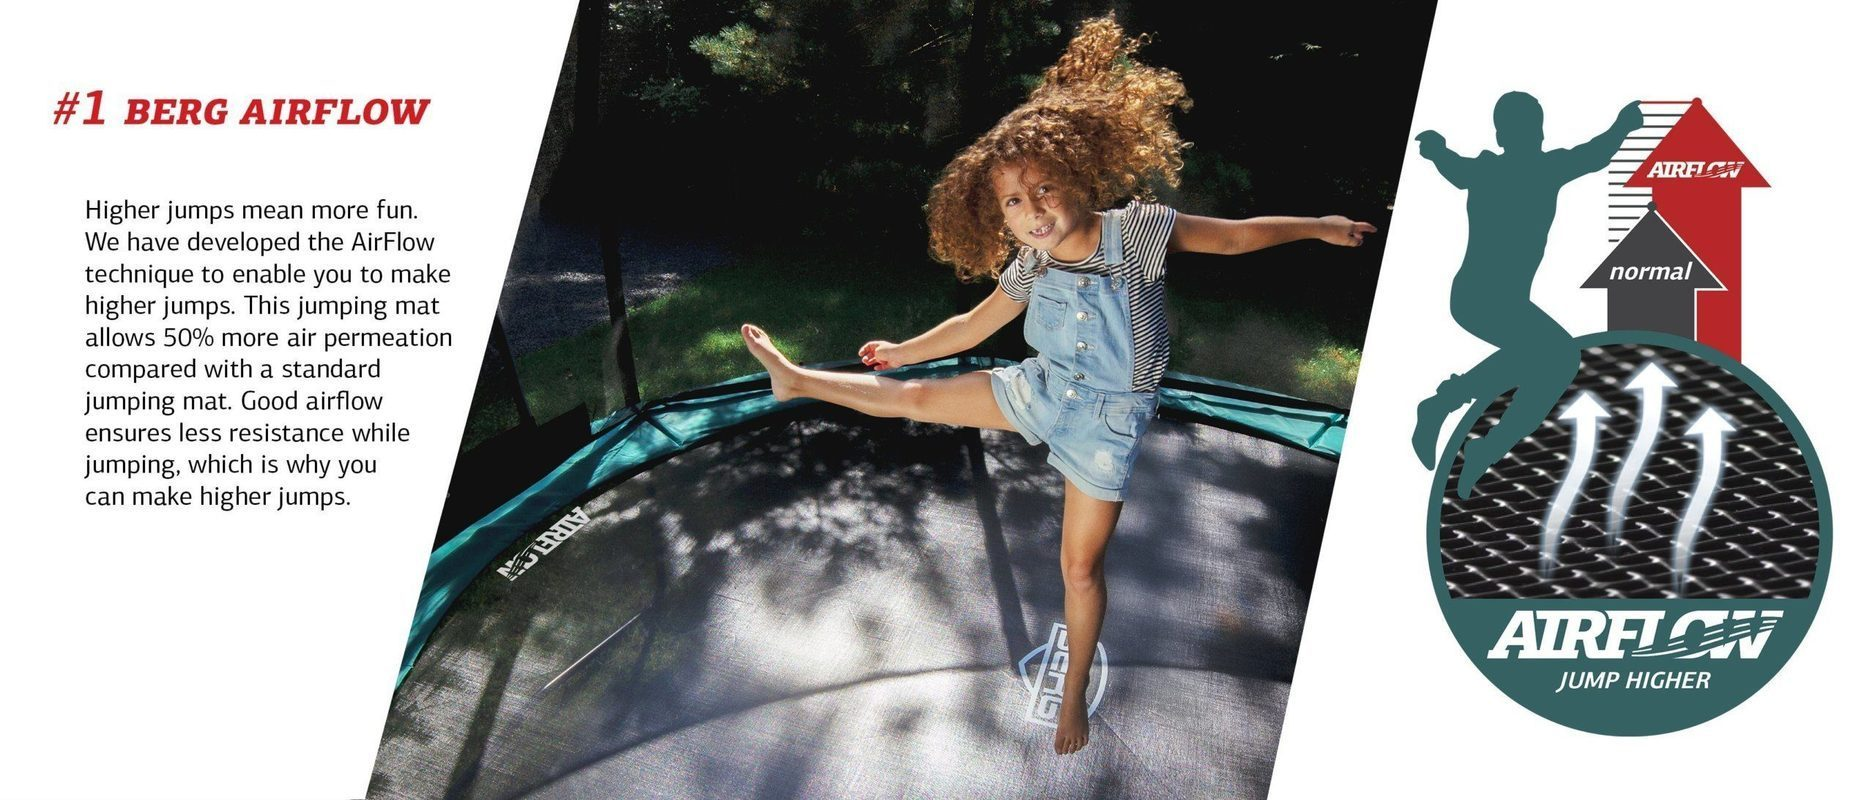 preview_01_TRAMPOLINE_USP_LARGE_AIRFLOW_EN (2)